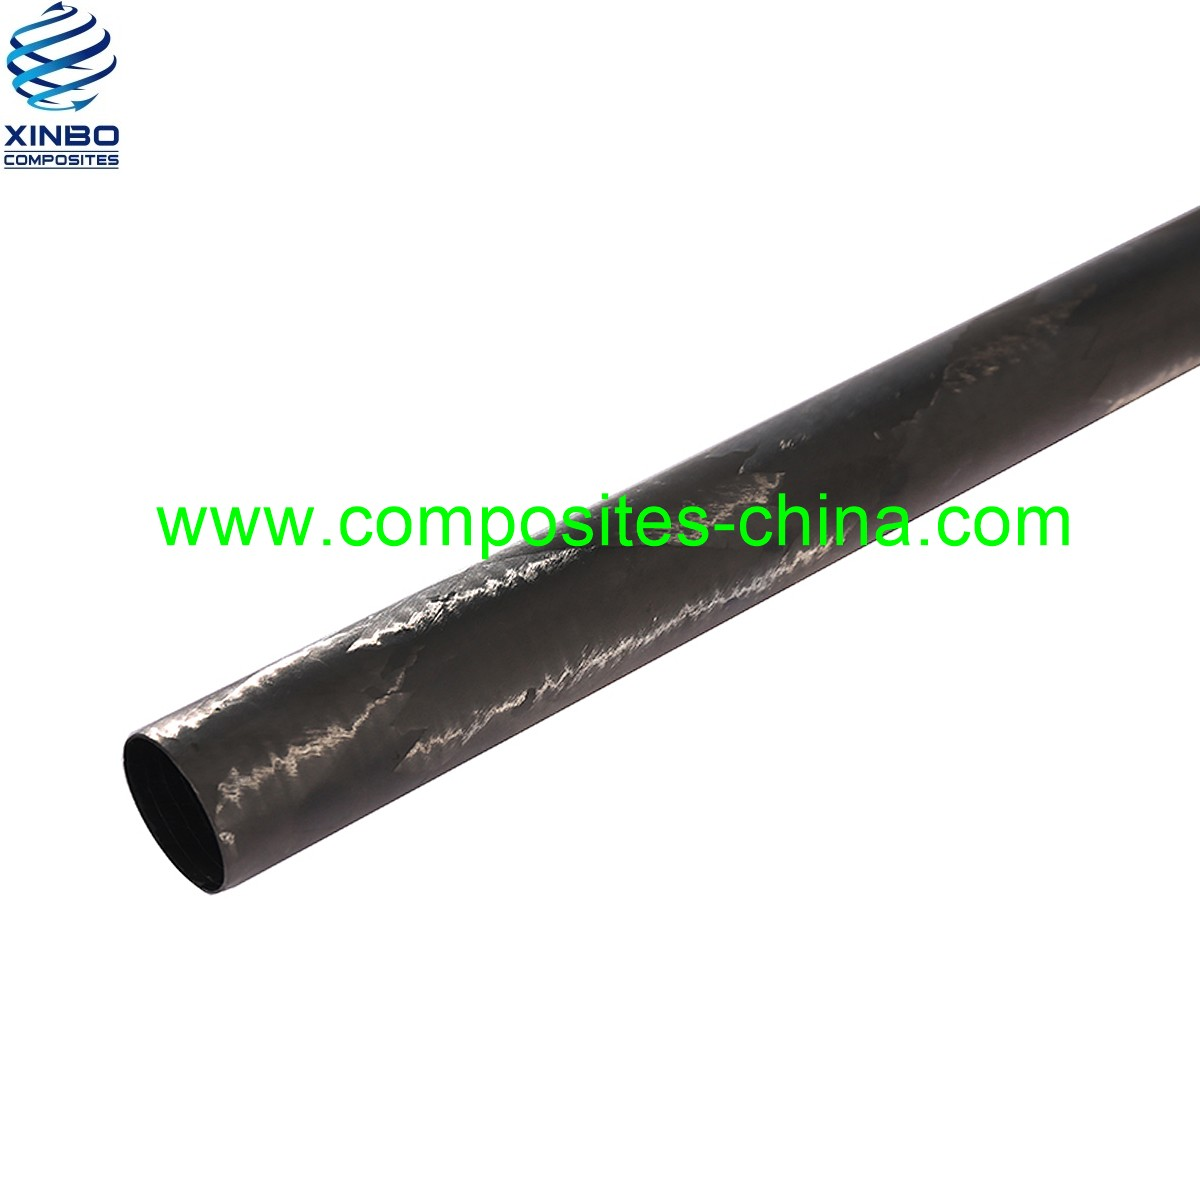 Hign Strength Fiberglass Oval Tubes with CNC cutting